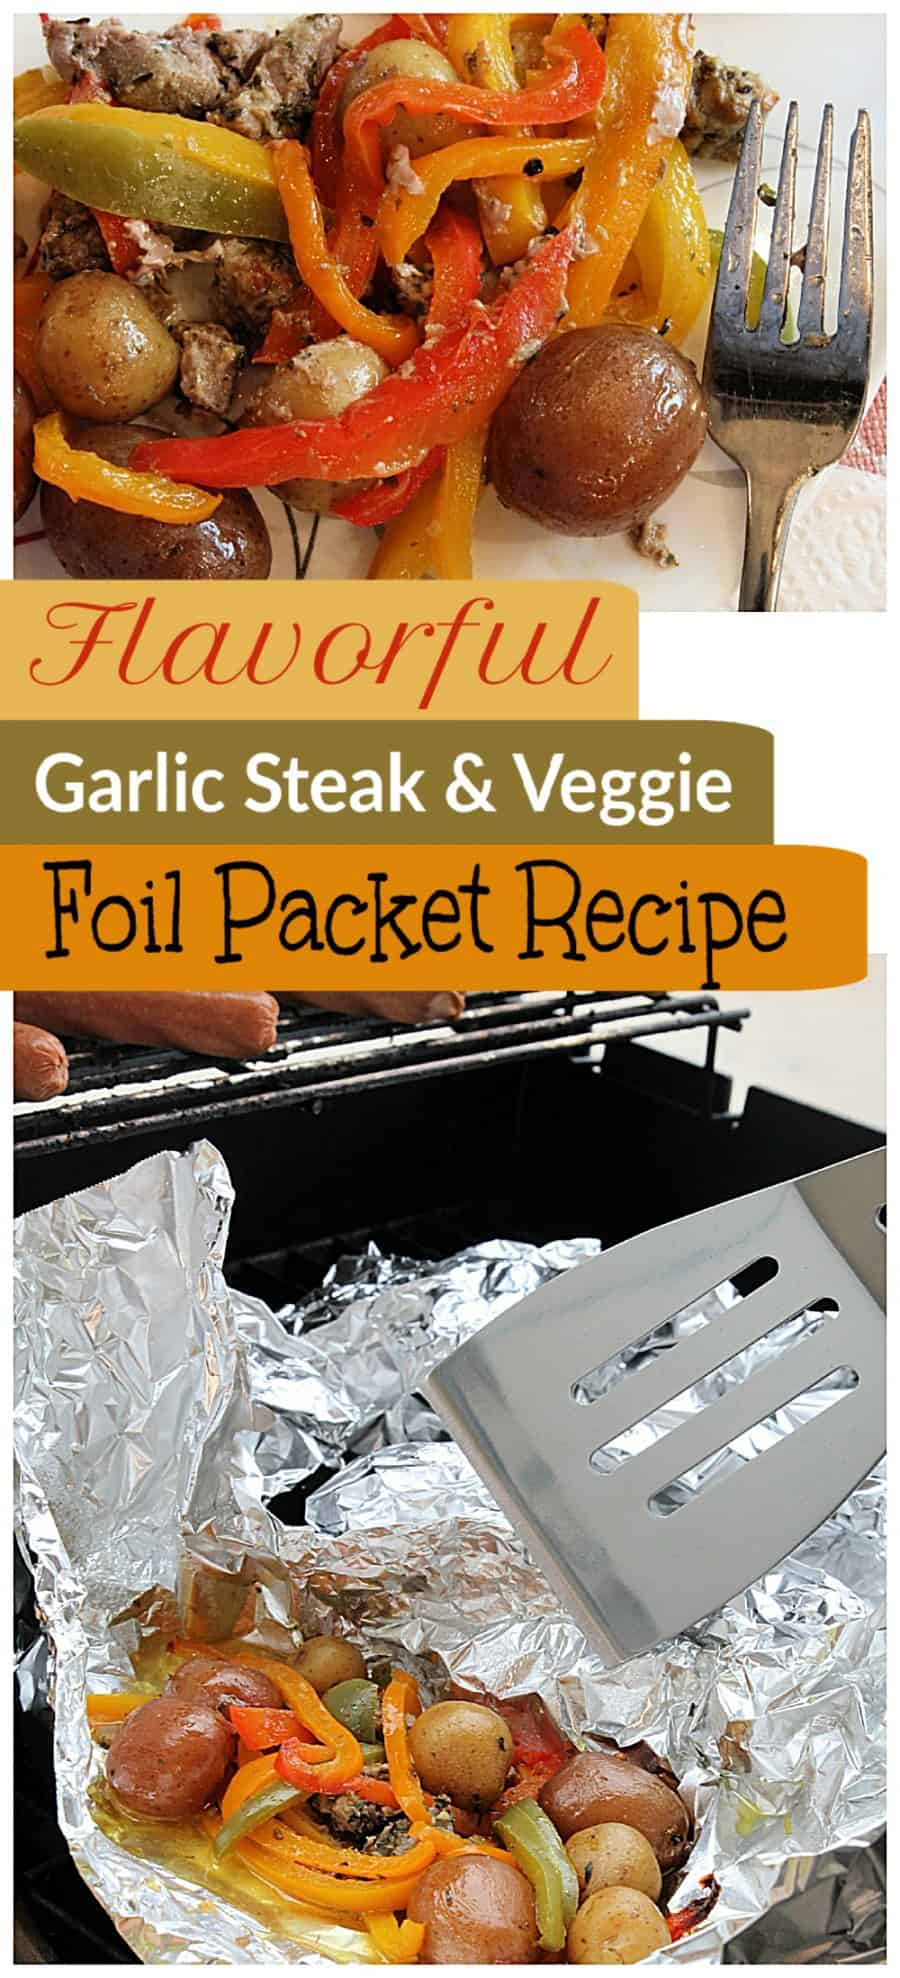 Flavorful Garlic Steak And Veggies Foil Packet Grill Meal Recipe